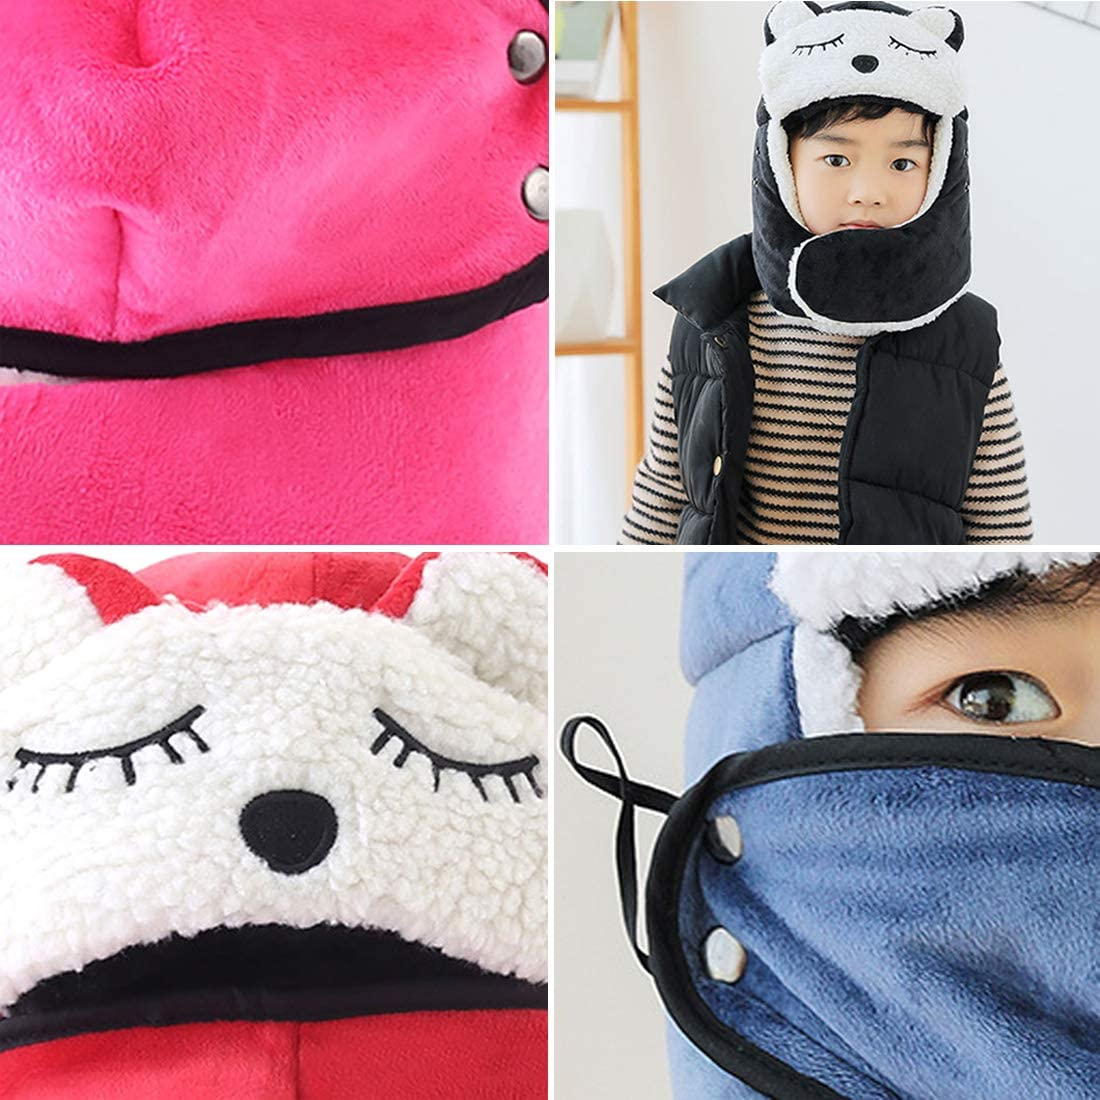 LORYLOLY Hat /& Scarf Winter Set for 3-9 Years Boys Old /& Girls Thermal Fleece Lining Hat Scarf for Kids for Cold Weather Ski Snowboard Snowball Warm Thick Fashion